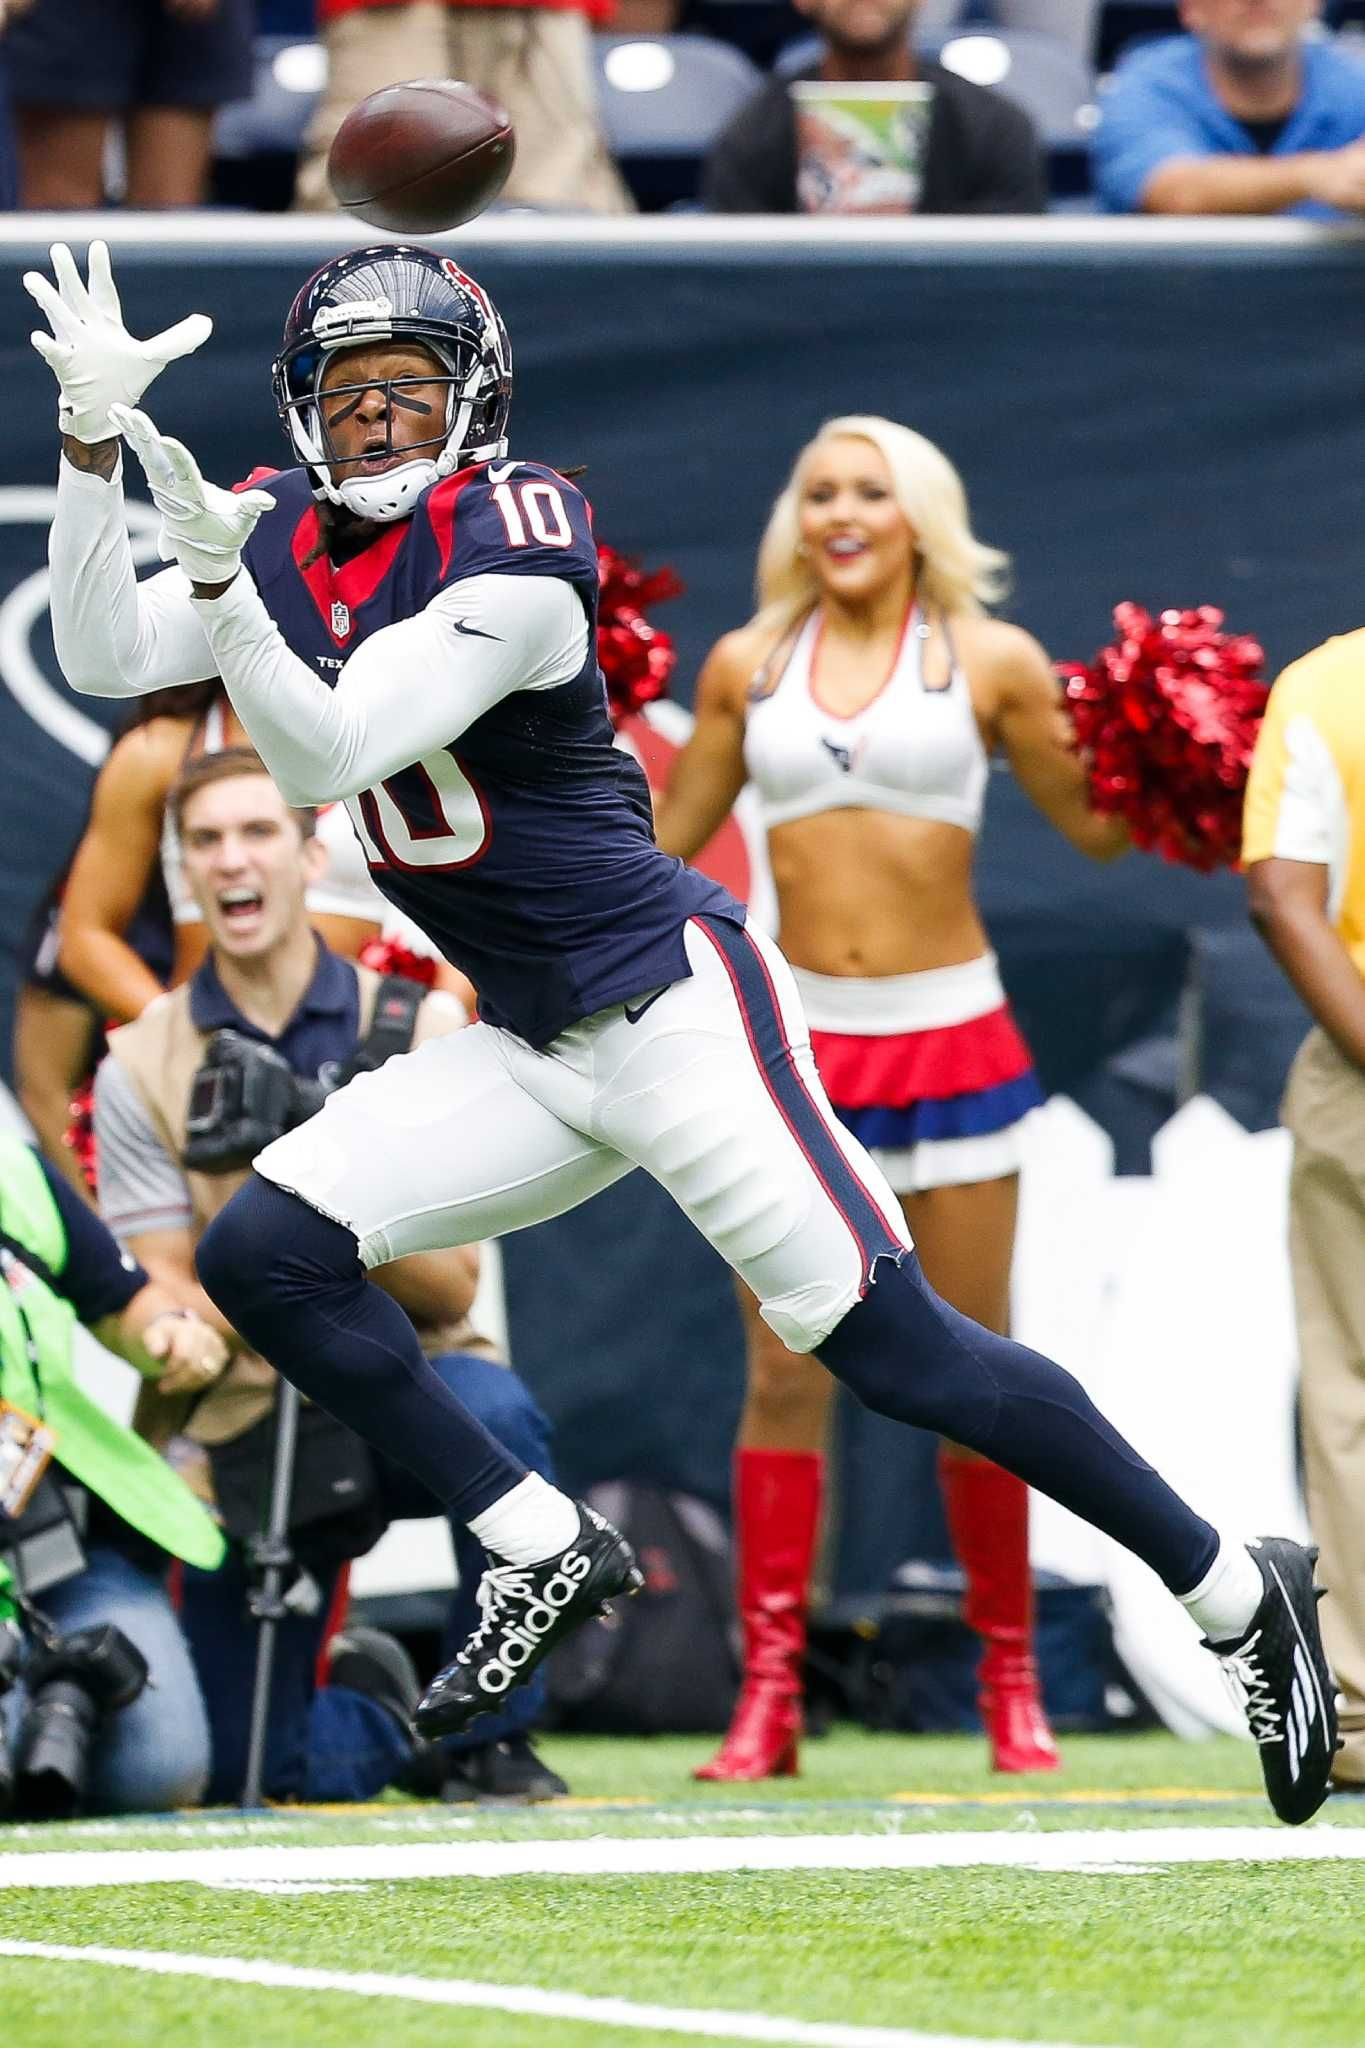 The Texans Offense Has Been Sputtering Through Three Games